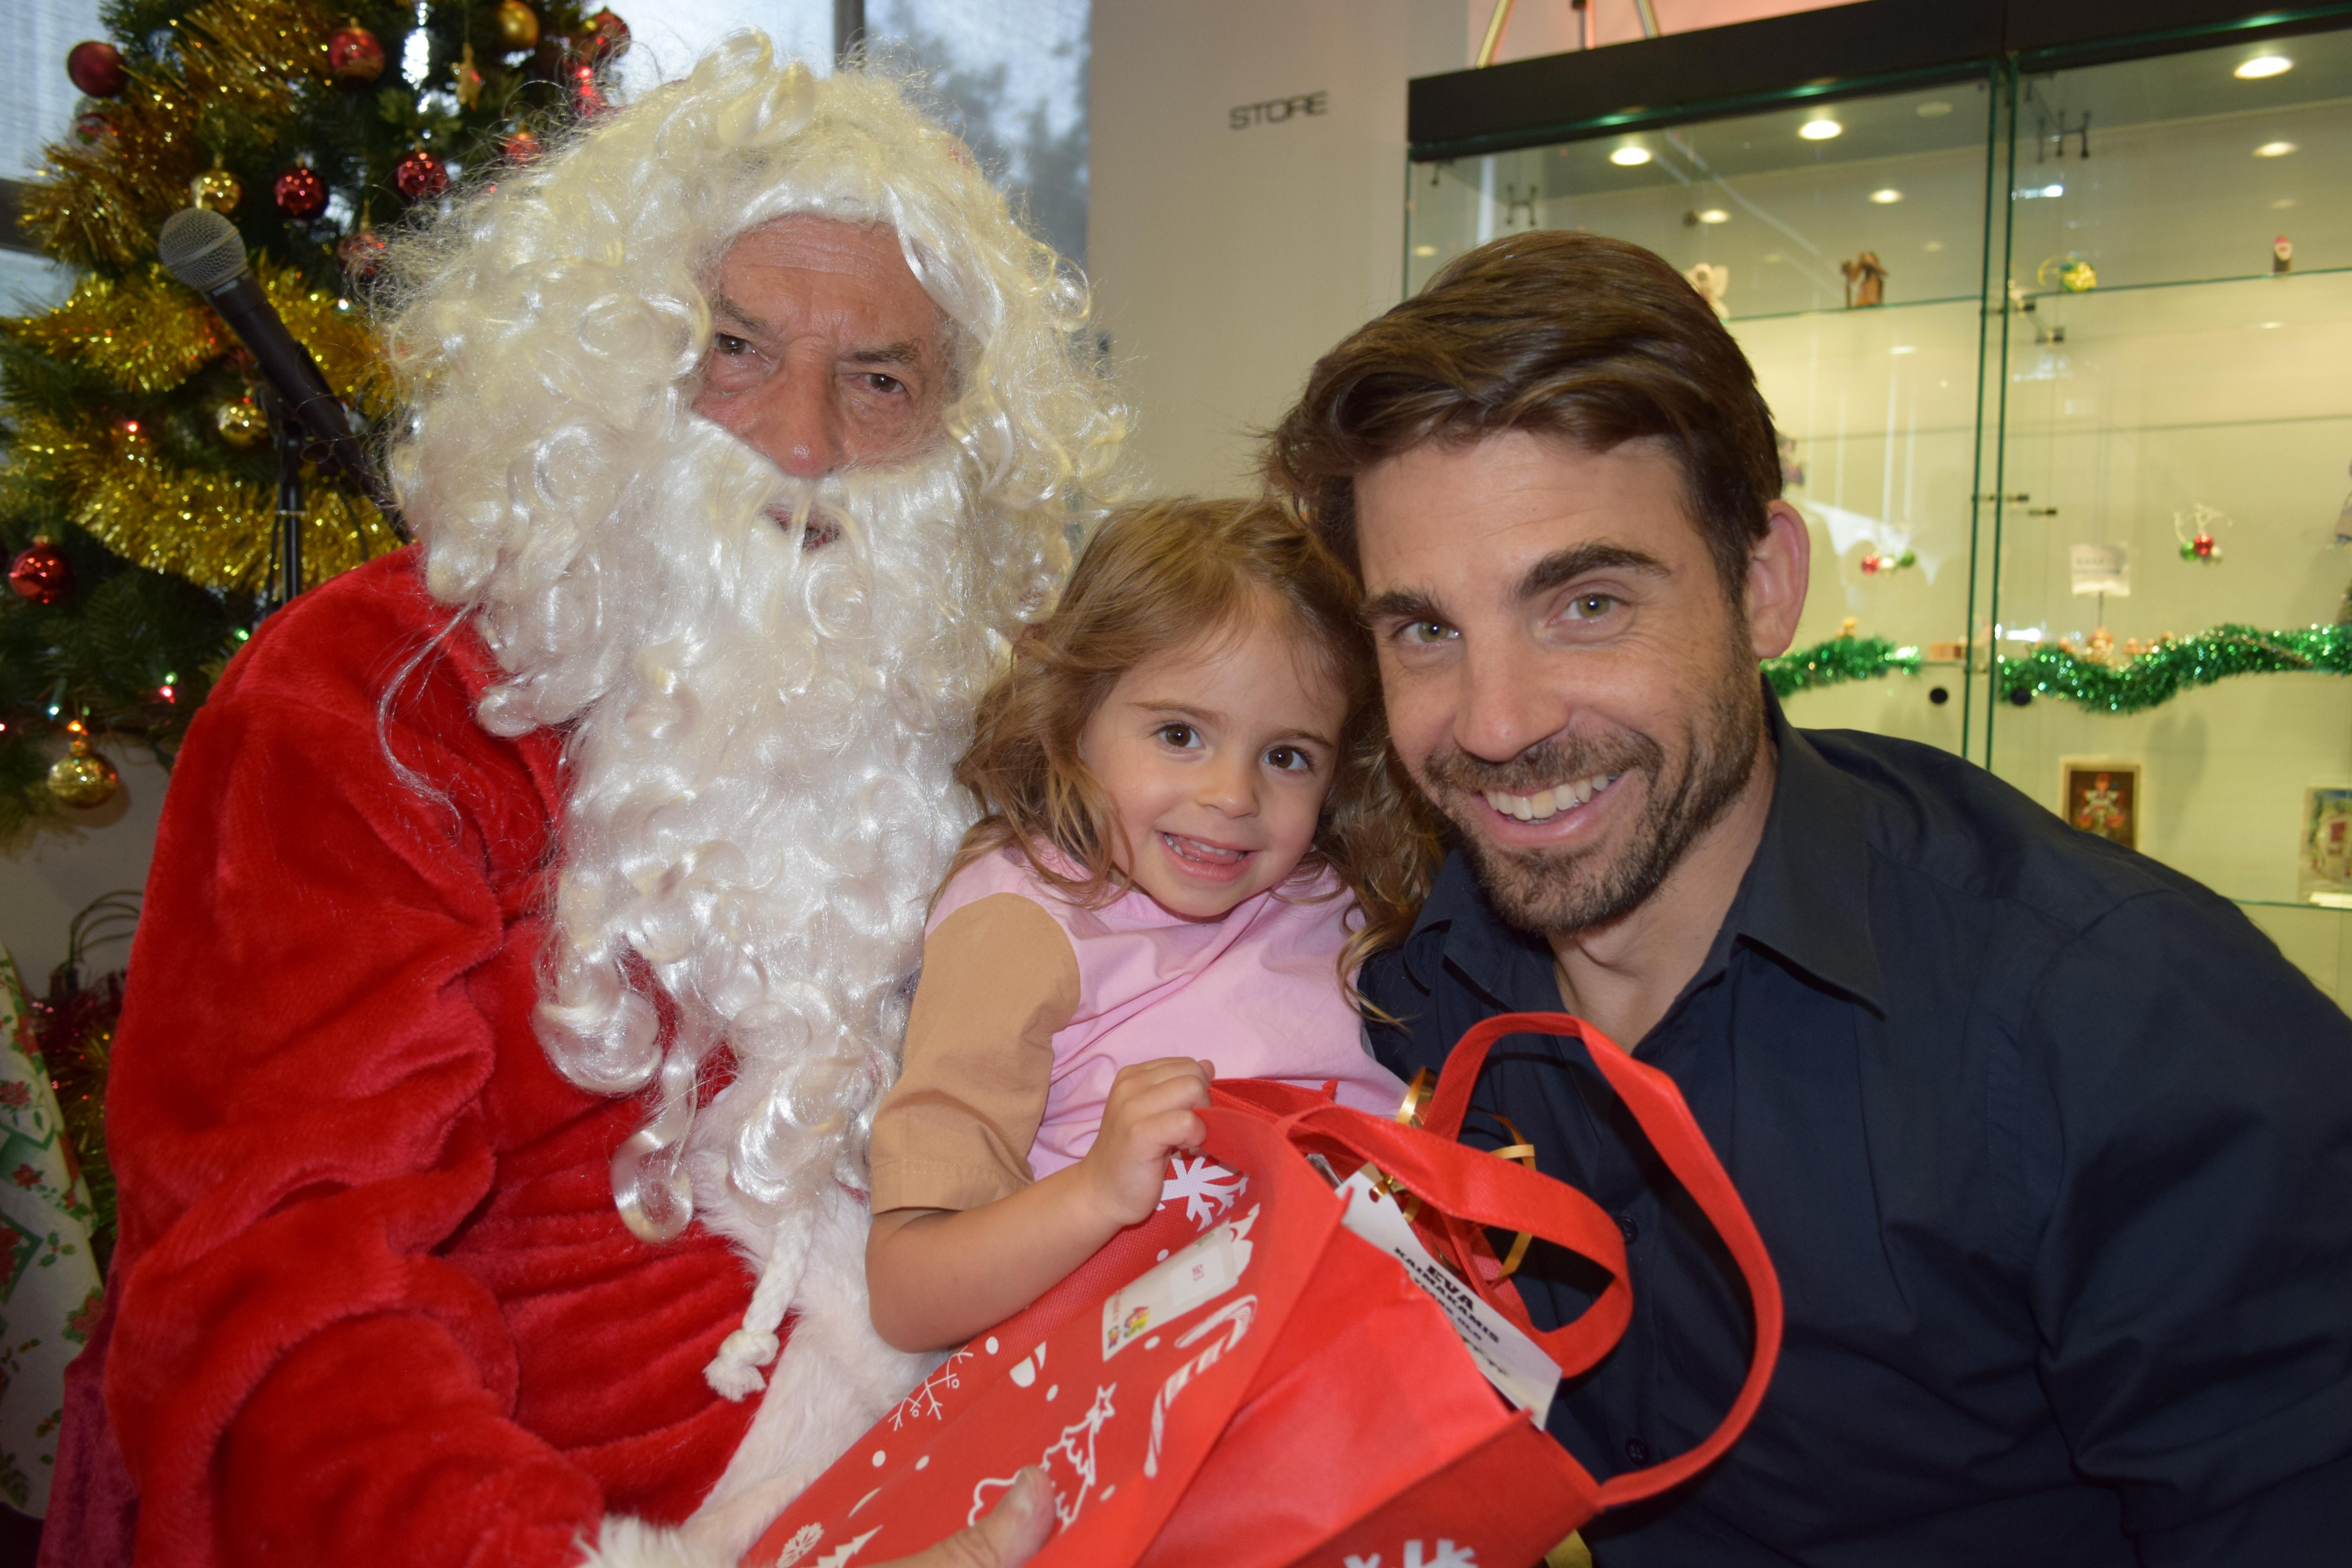 Children delighted by the entertainment at this year's Chidren's Christmas Party